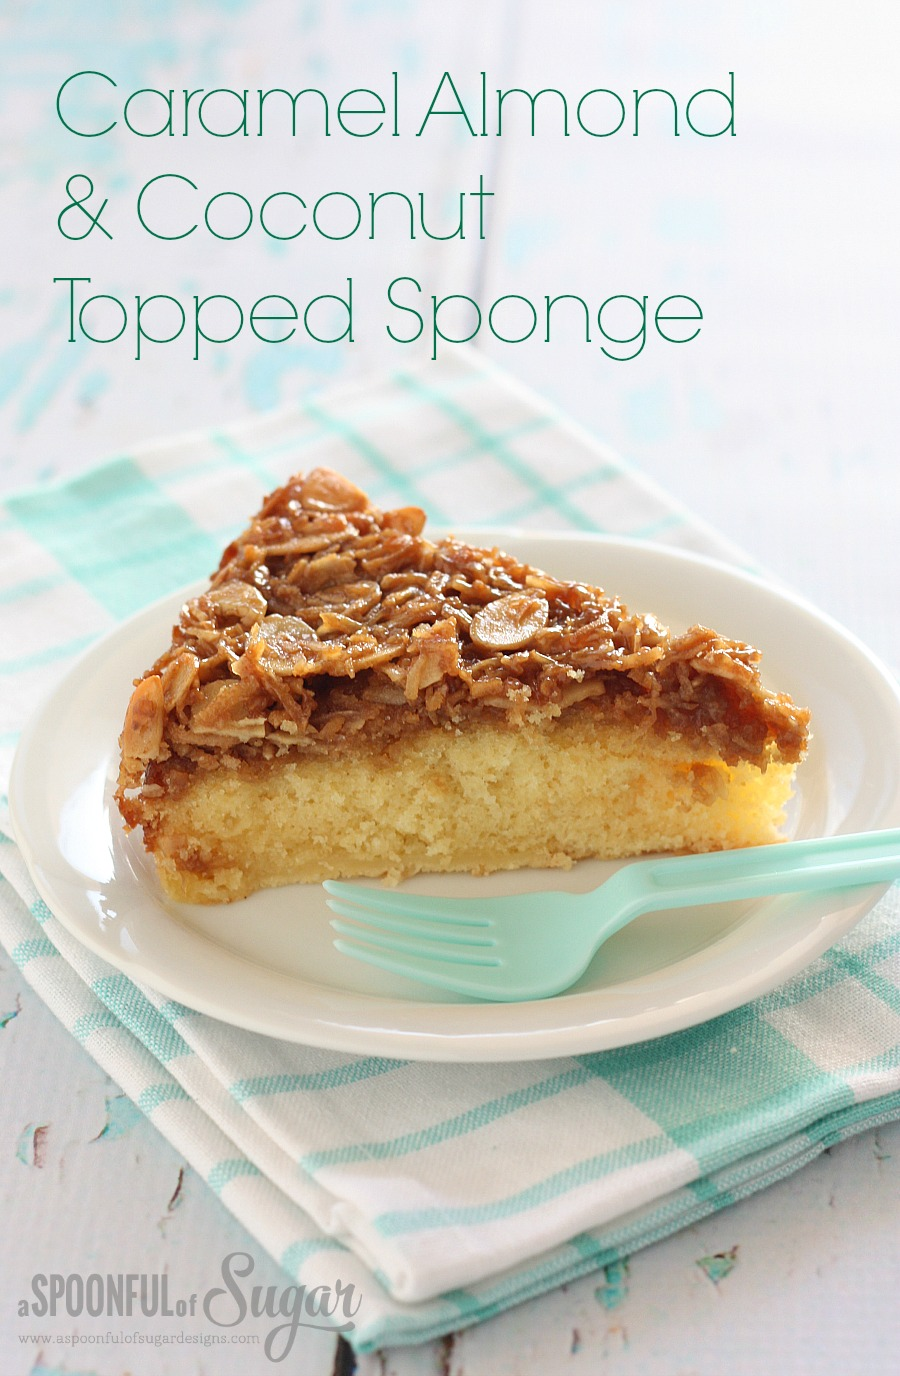 Caramel Almond and Coconut Topped Sponge